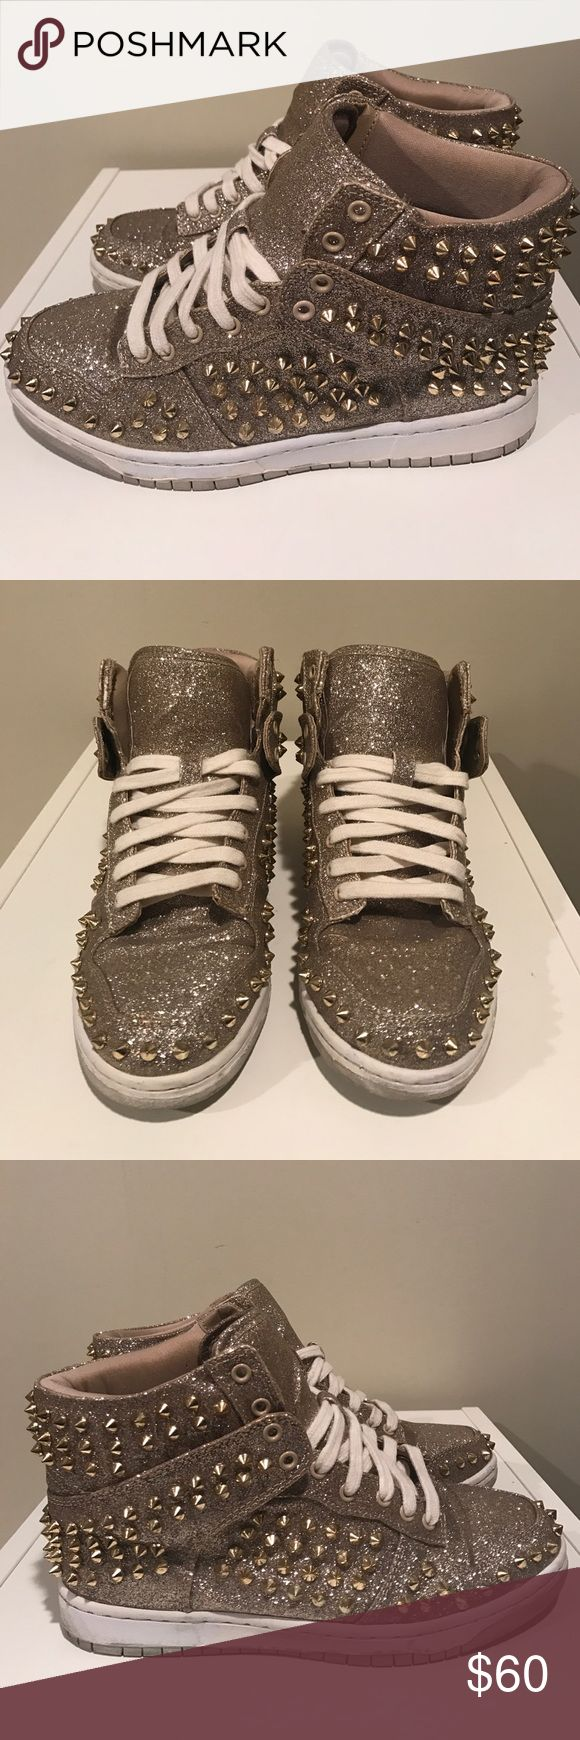 "STEVE MADDEN ""Shuffle S"" Gold Studded Sneakers These gold studded sneakers will be the star of the show!  They are extremely comfortable and add a statement to your outfit!  Worn once. EUC. No Trades. Steve Madden Shoes Sneakers"